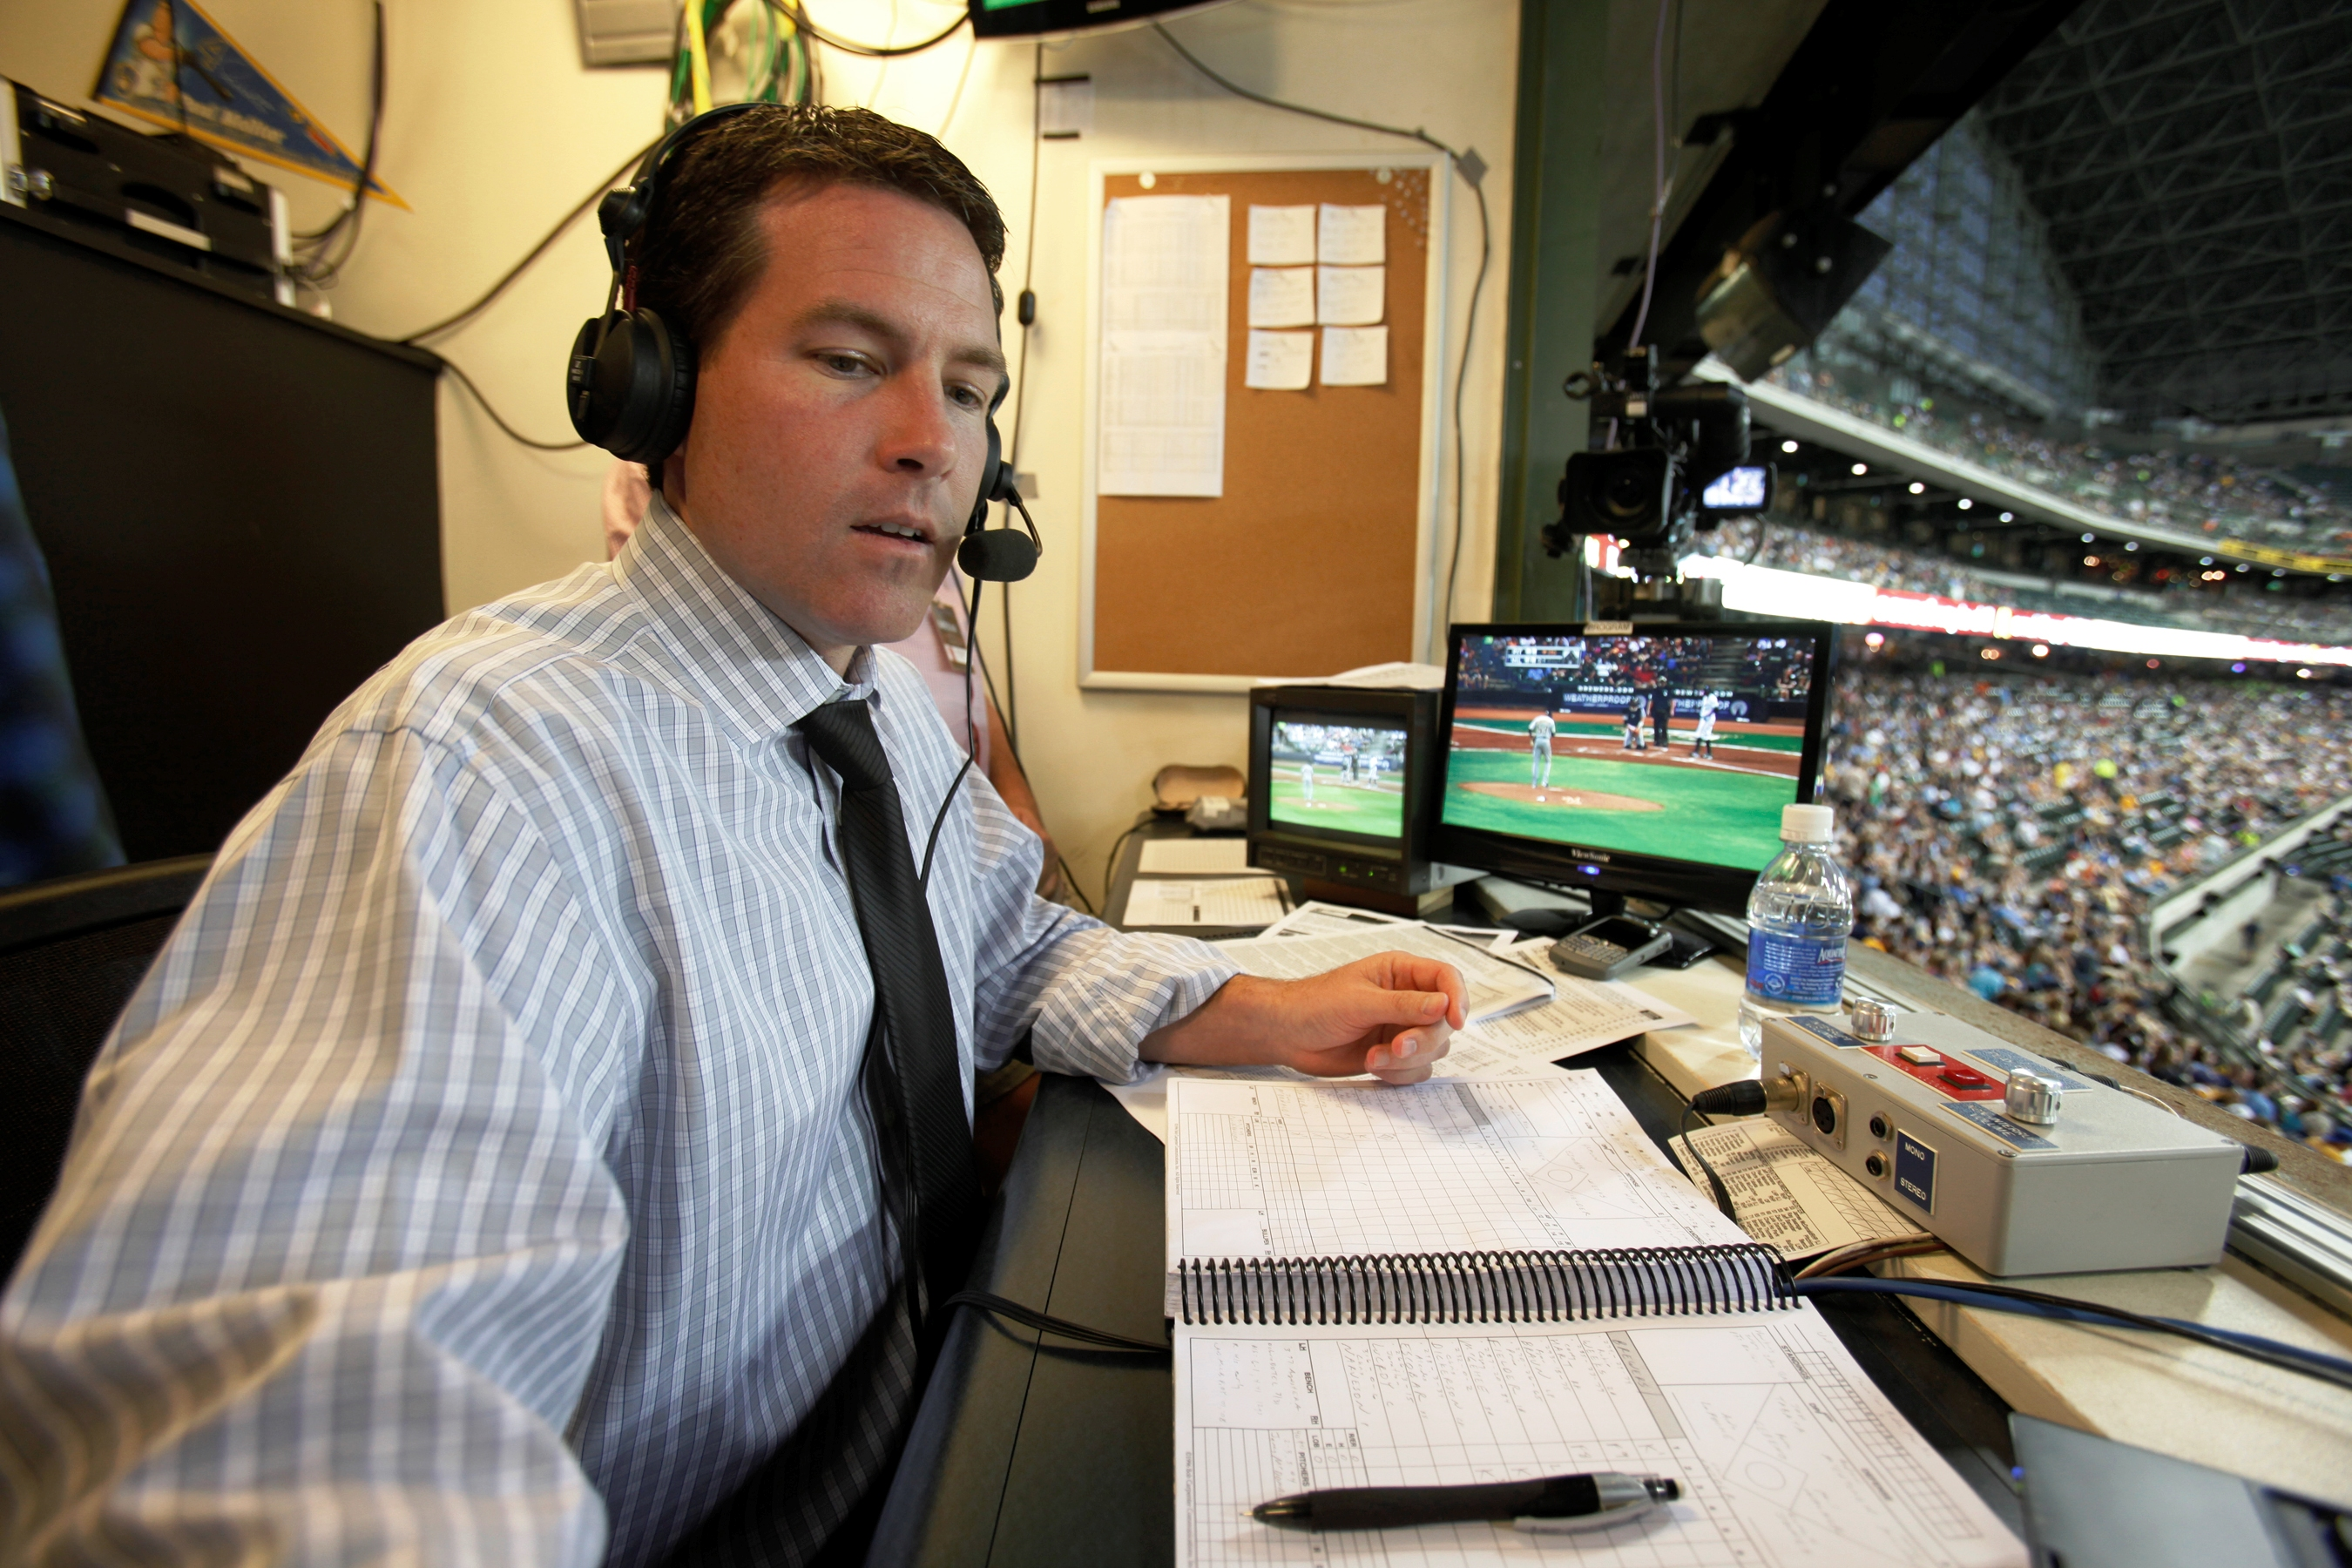 Brian Anderson will call Sunday's Dodgers-Mets game on TBS alongside analyst Ron Darling.